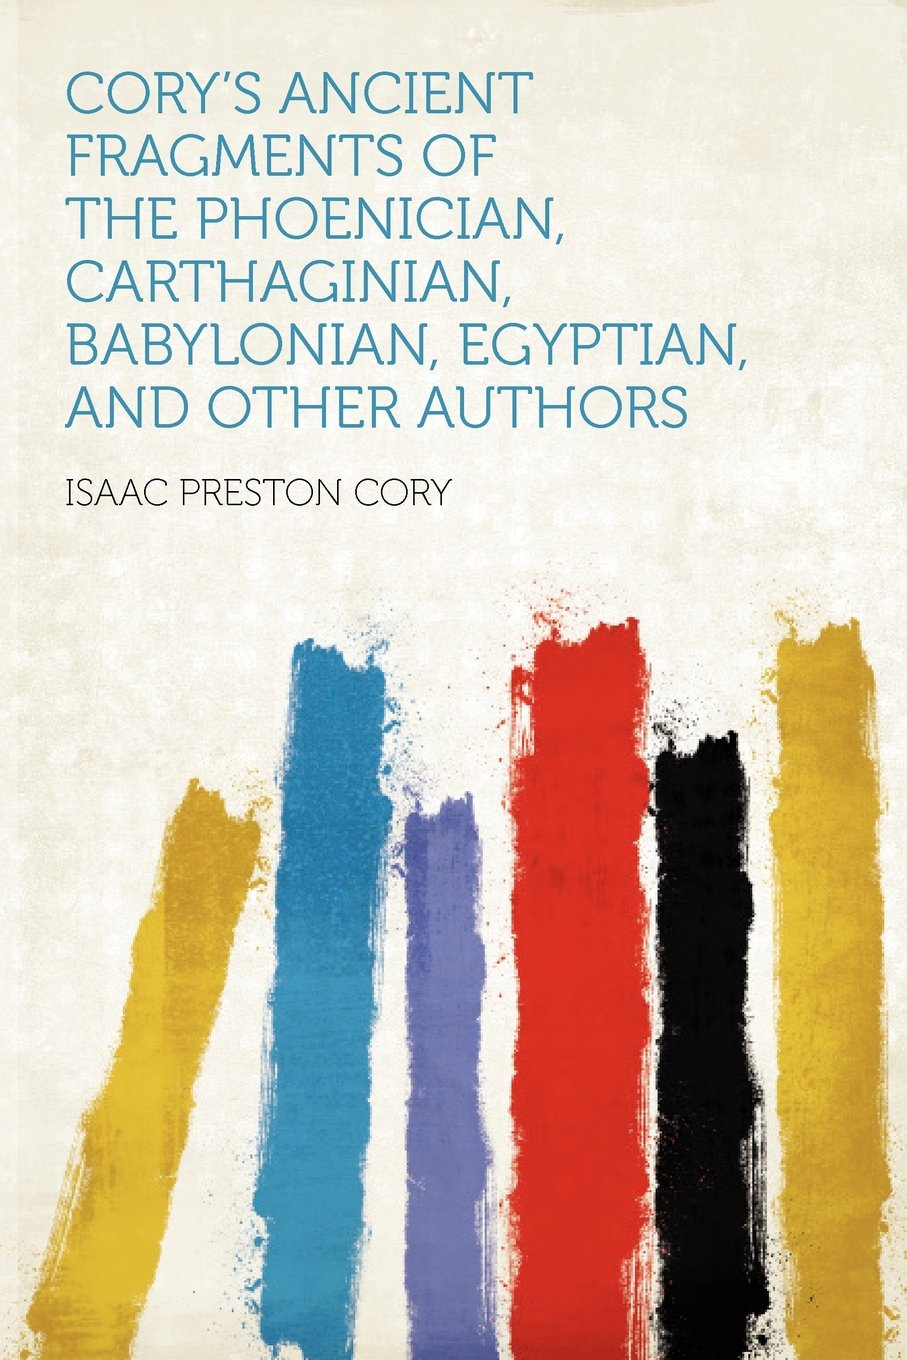 Cory's Ancient Fragments of the Phoenician, Carthaginian, Babylonian, Egyptian, and Other Authors